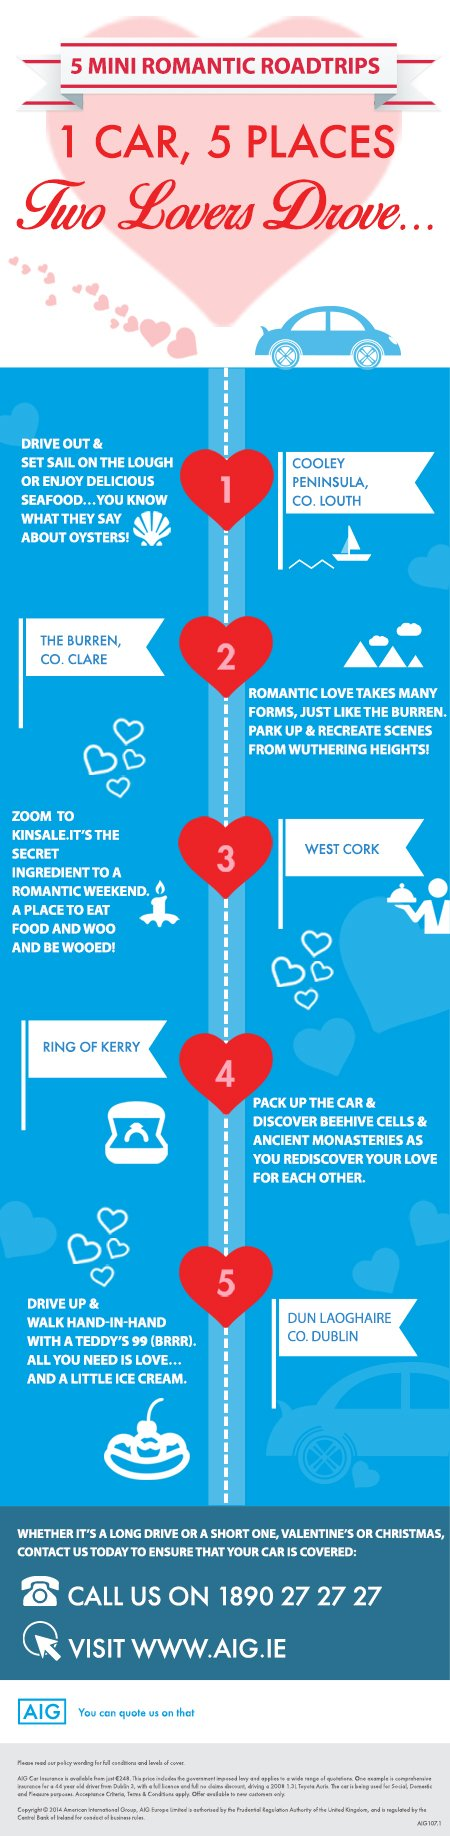 5 Mini Romantic Roadtrips Infographic